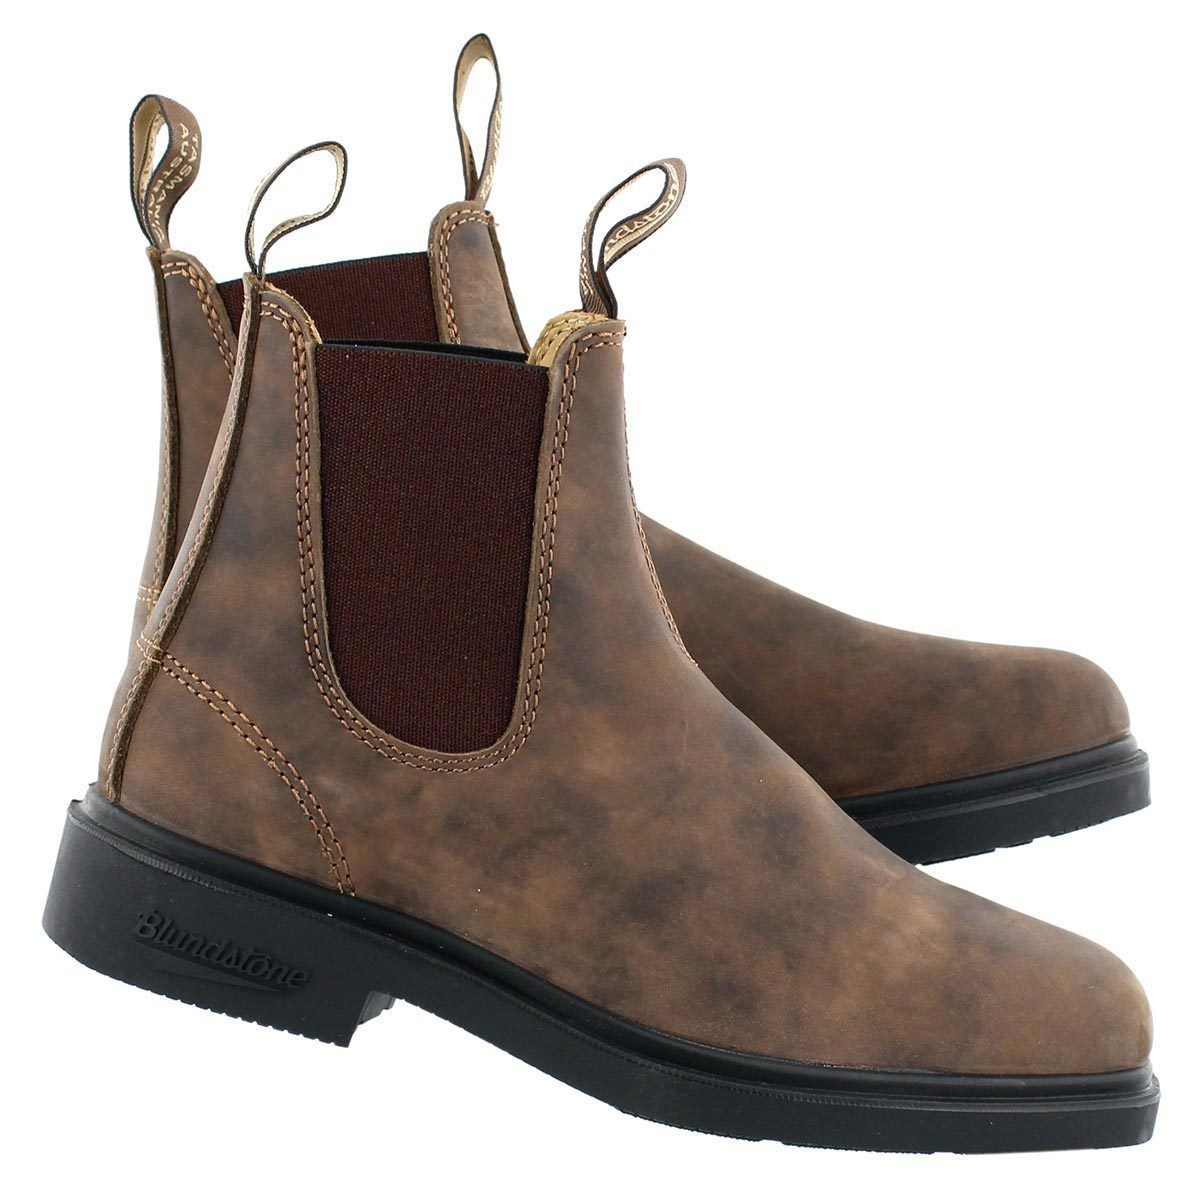 6f9a7069448 Details about BLUNDSTONE 1306 rustic brown leather non-safety chelsea boot  size 6-12UK